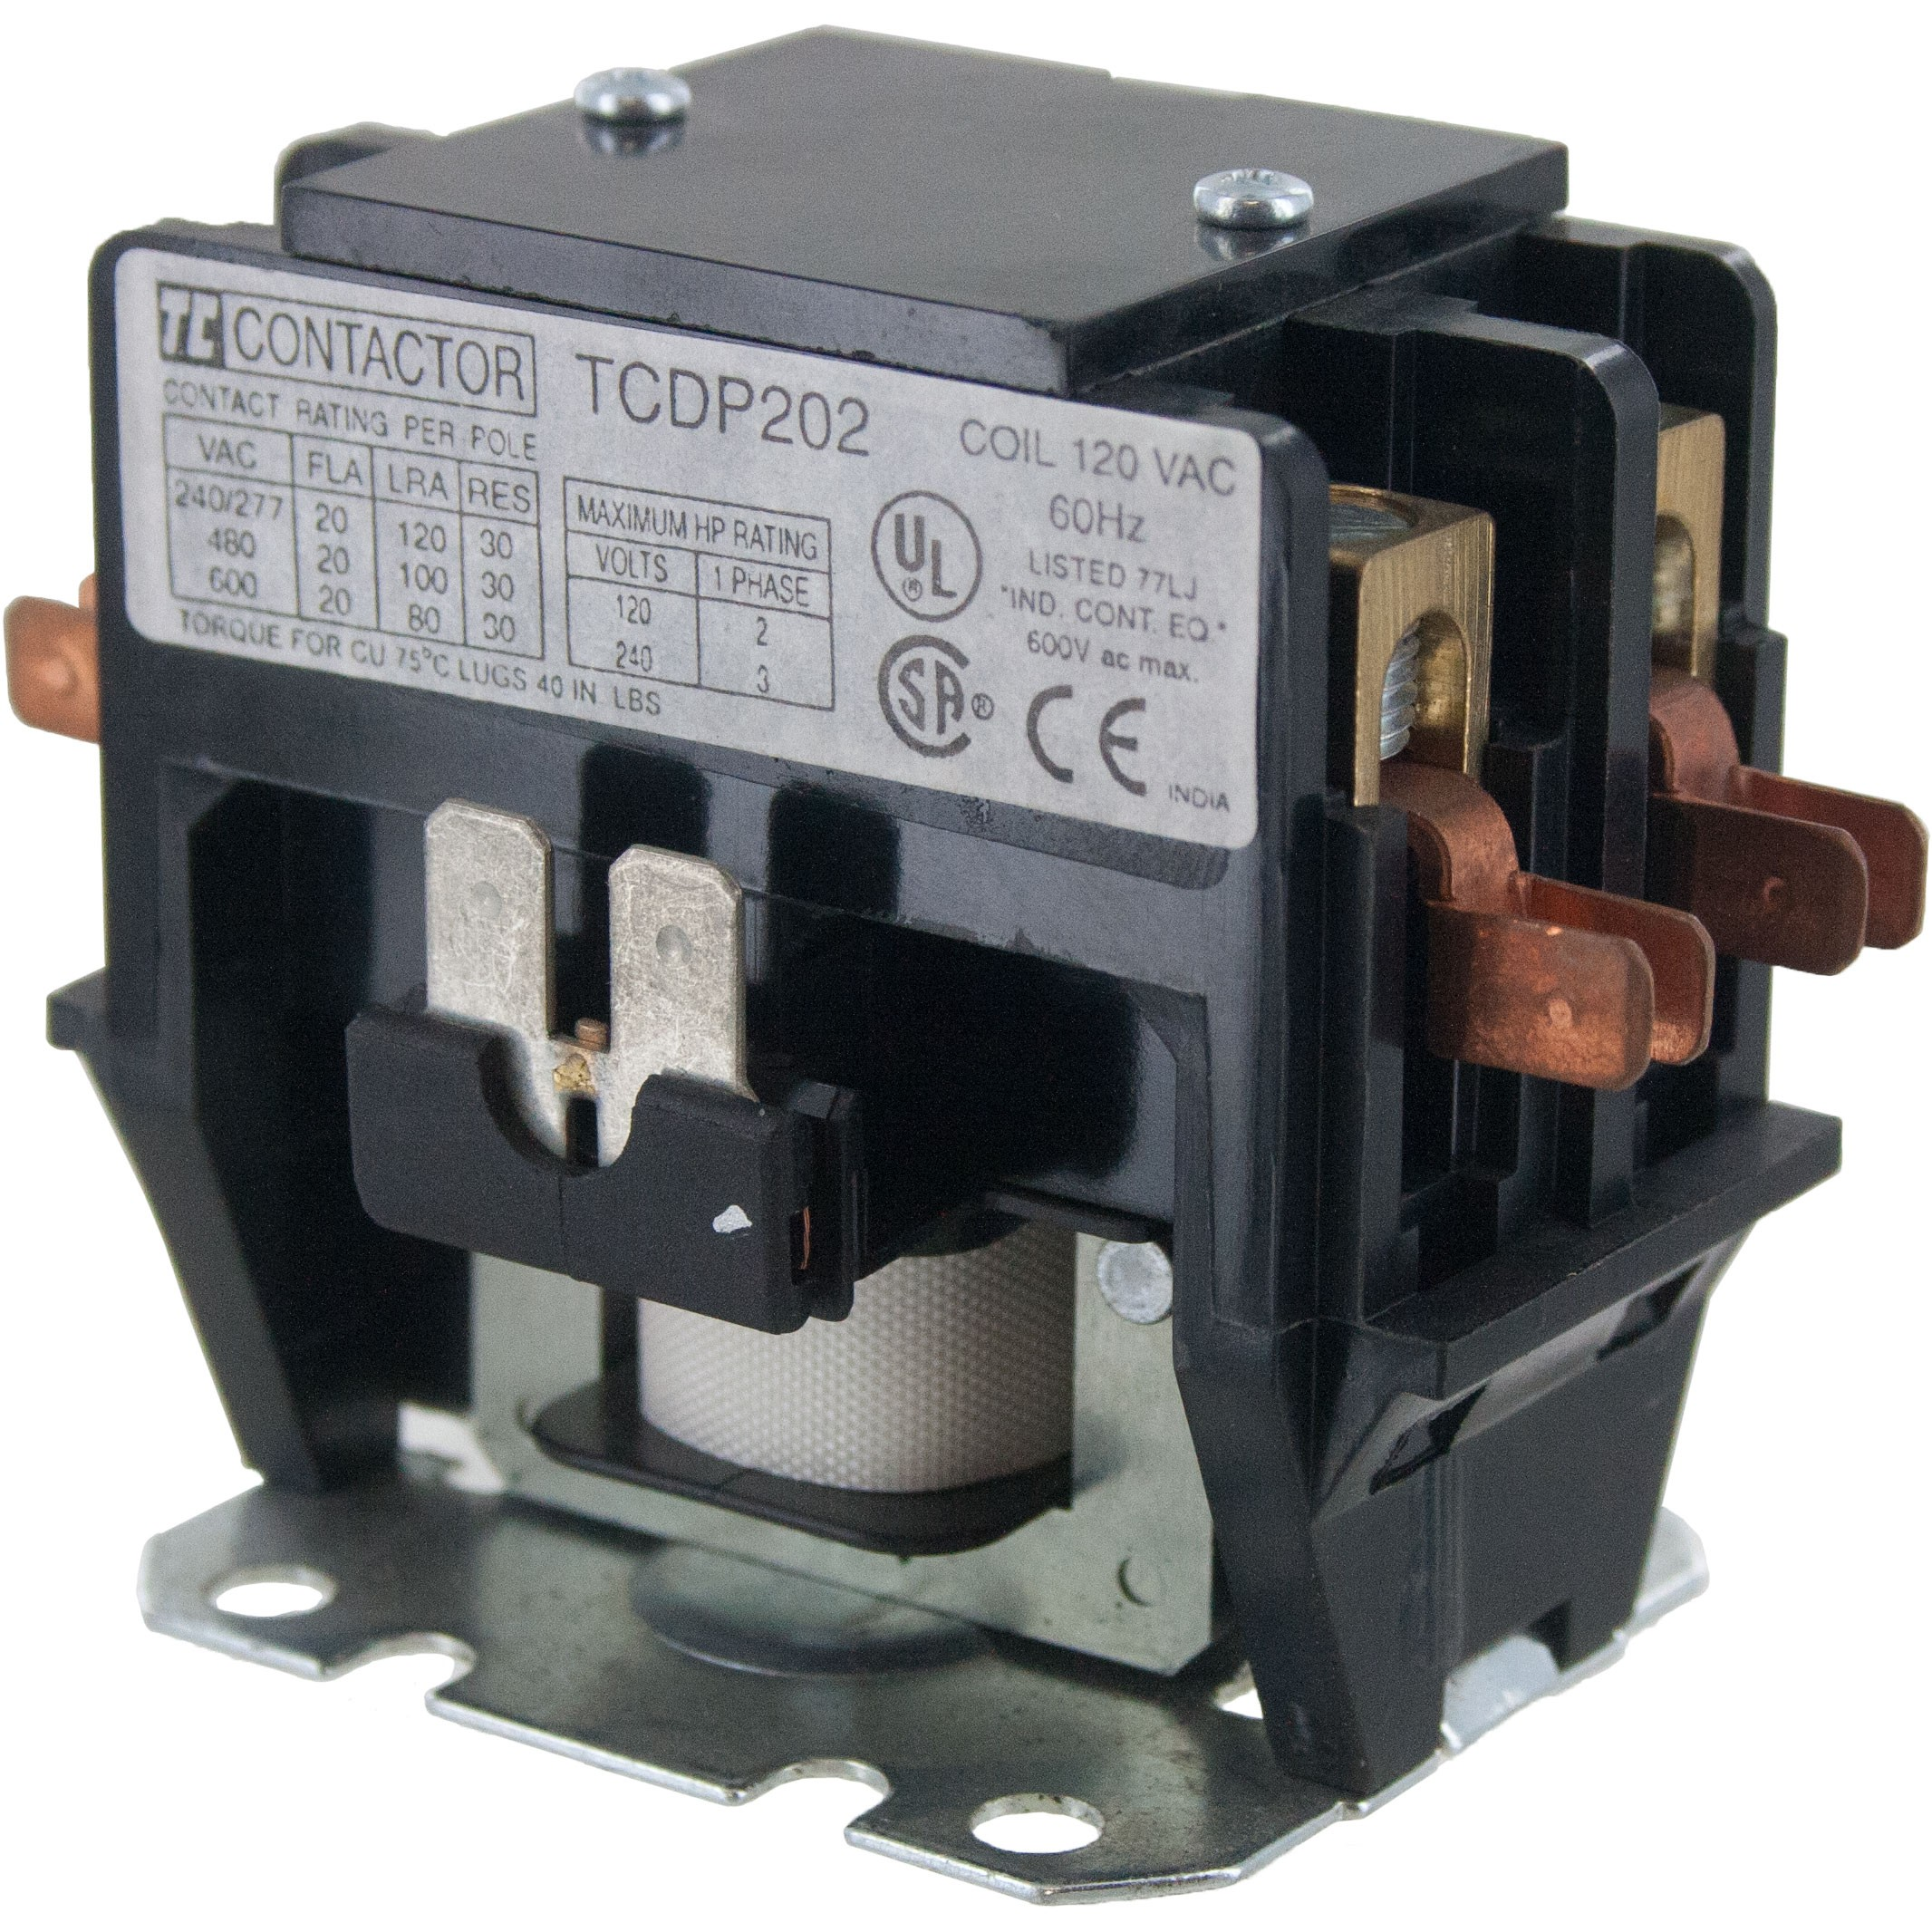 2 Pole Contactor 20 Amp 120vac Coil Elecdirect 120 Volt Wiring